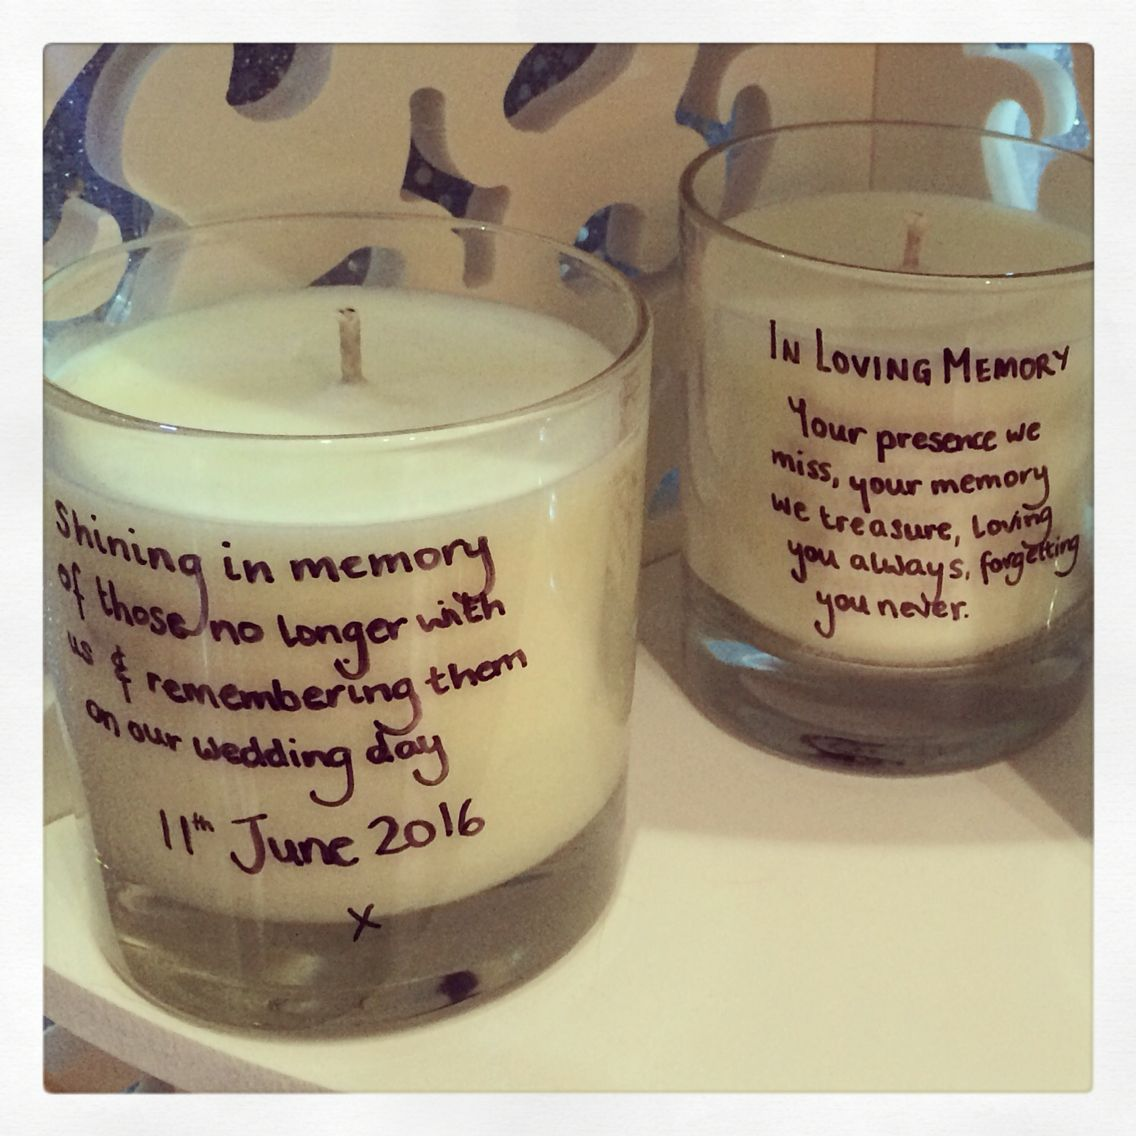 Memory candles Scented Haven Scent soy wax jar candles with personalised message